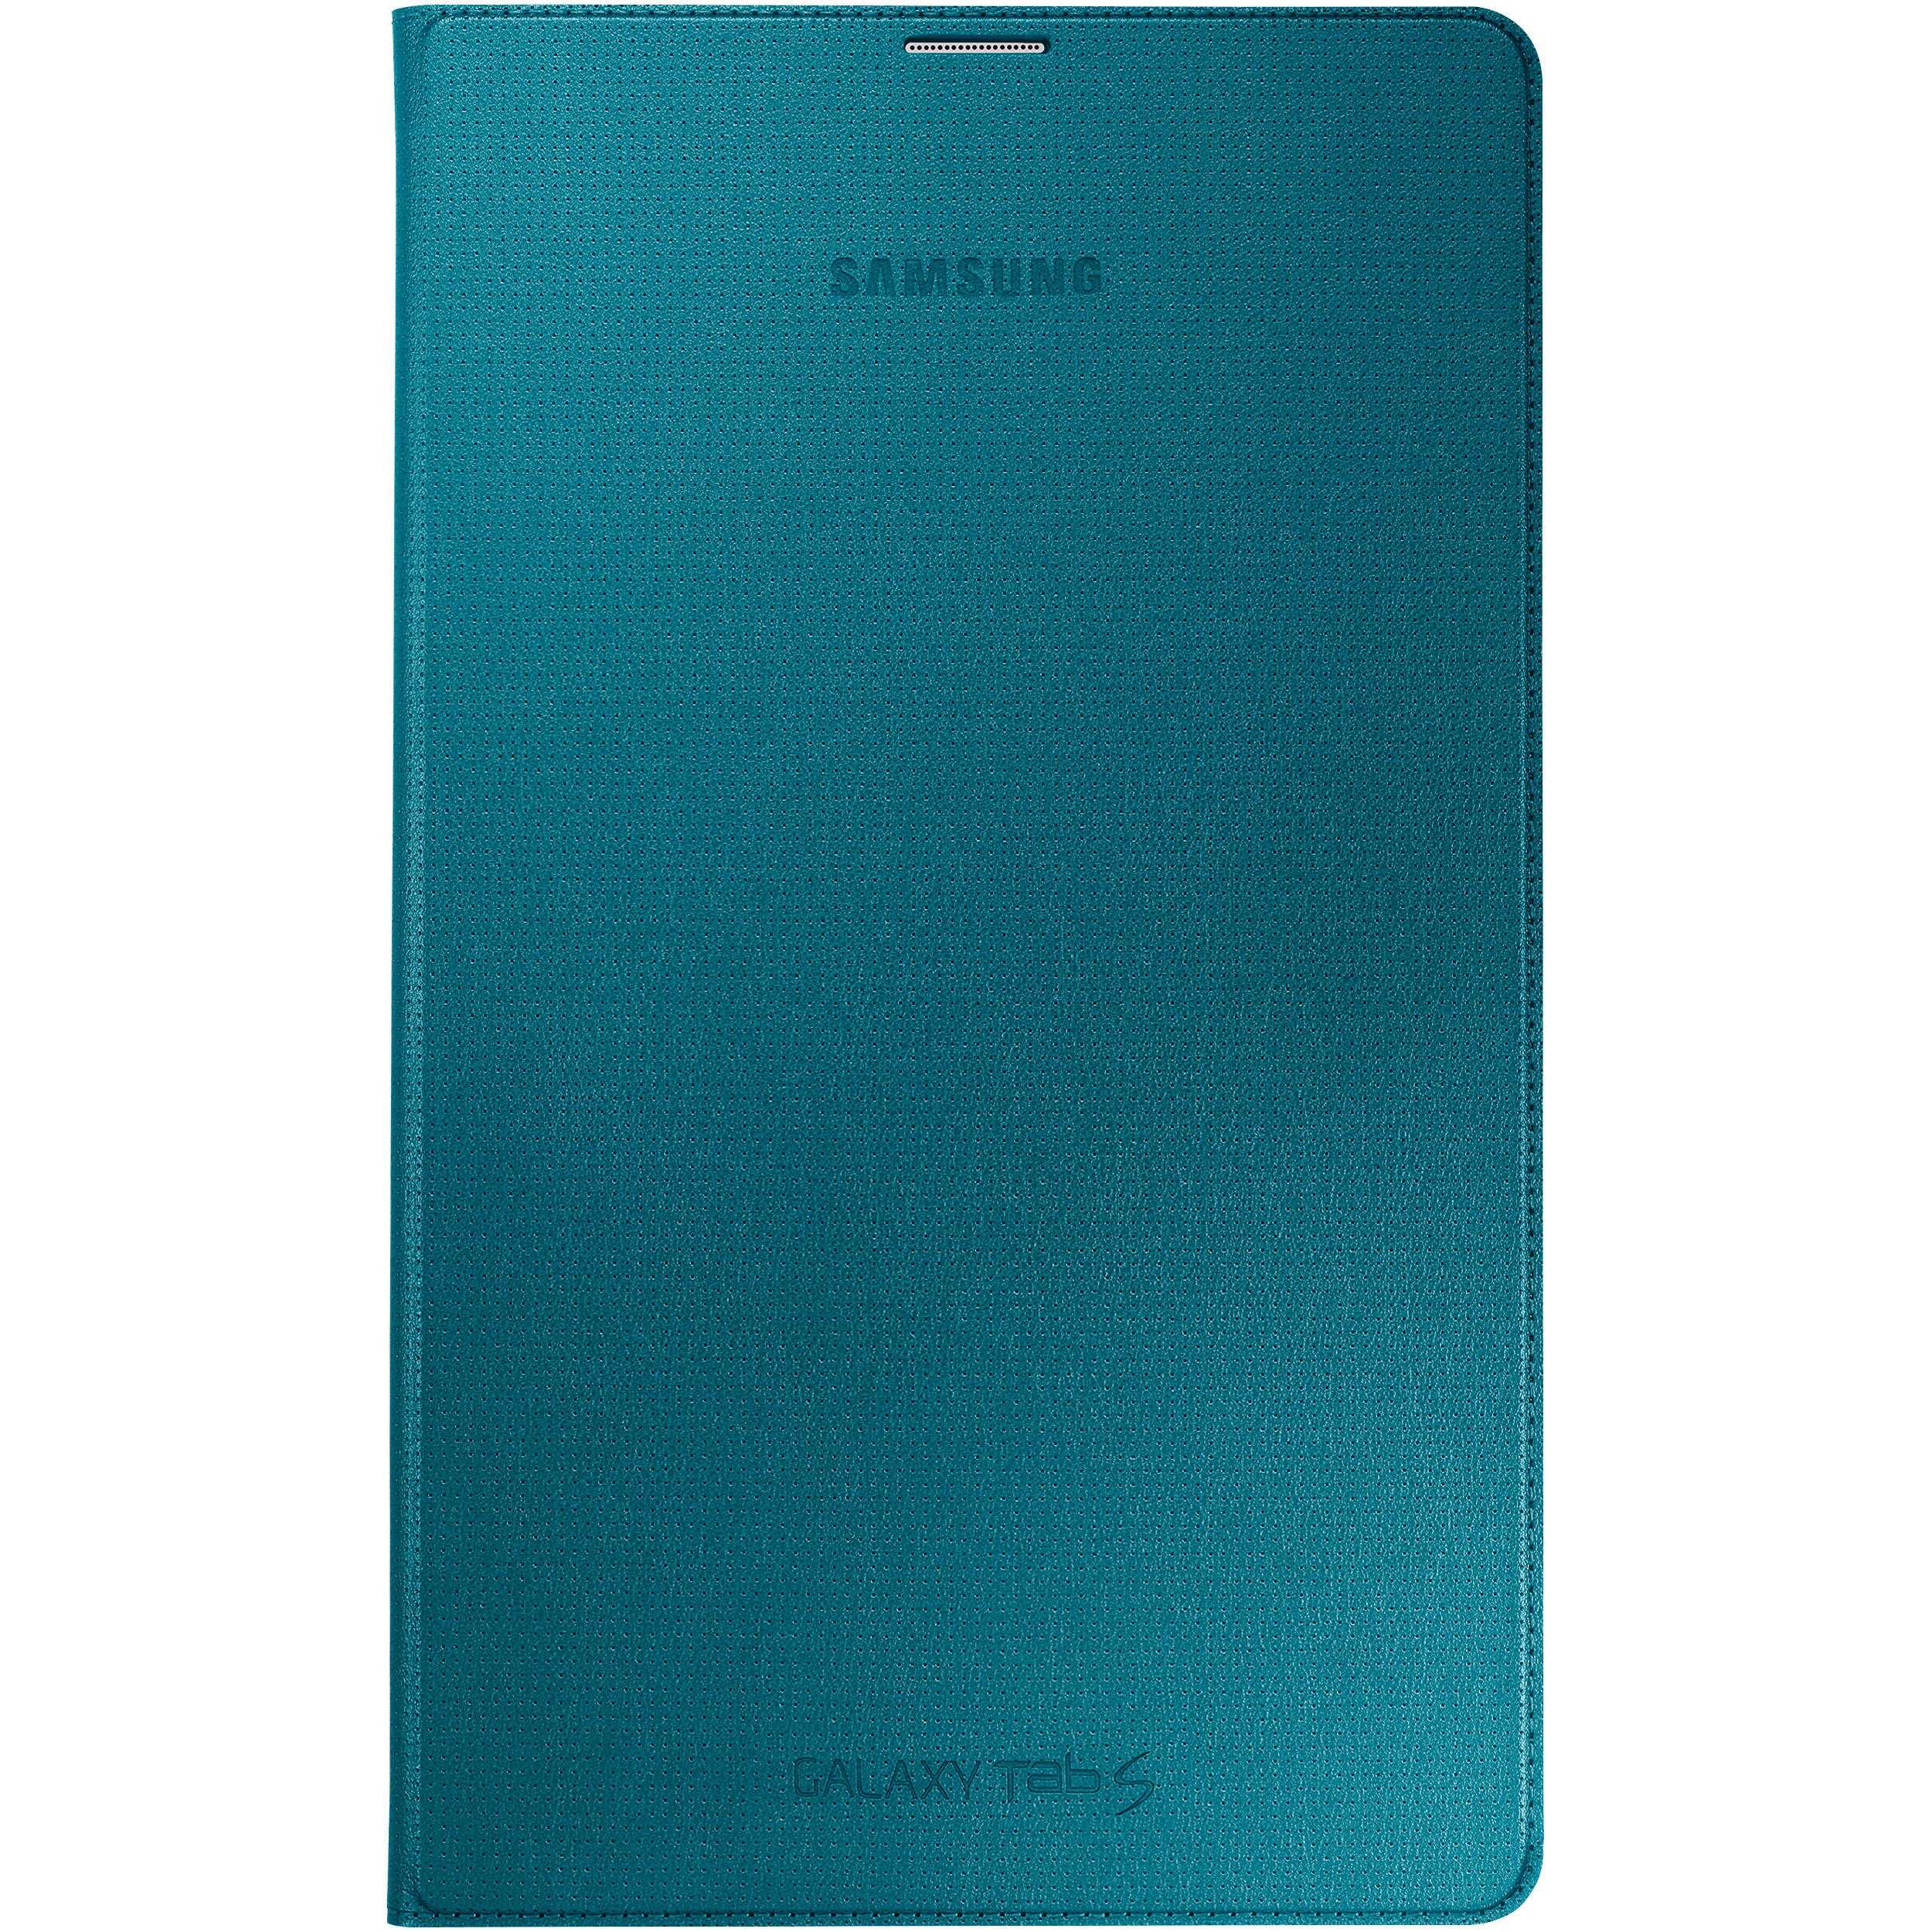 Samsung Simple Cover for Samsung Galaxy Tab S 8.4 EF ...